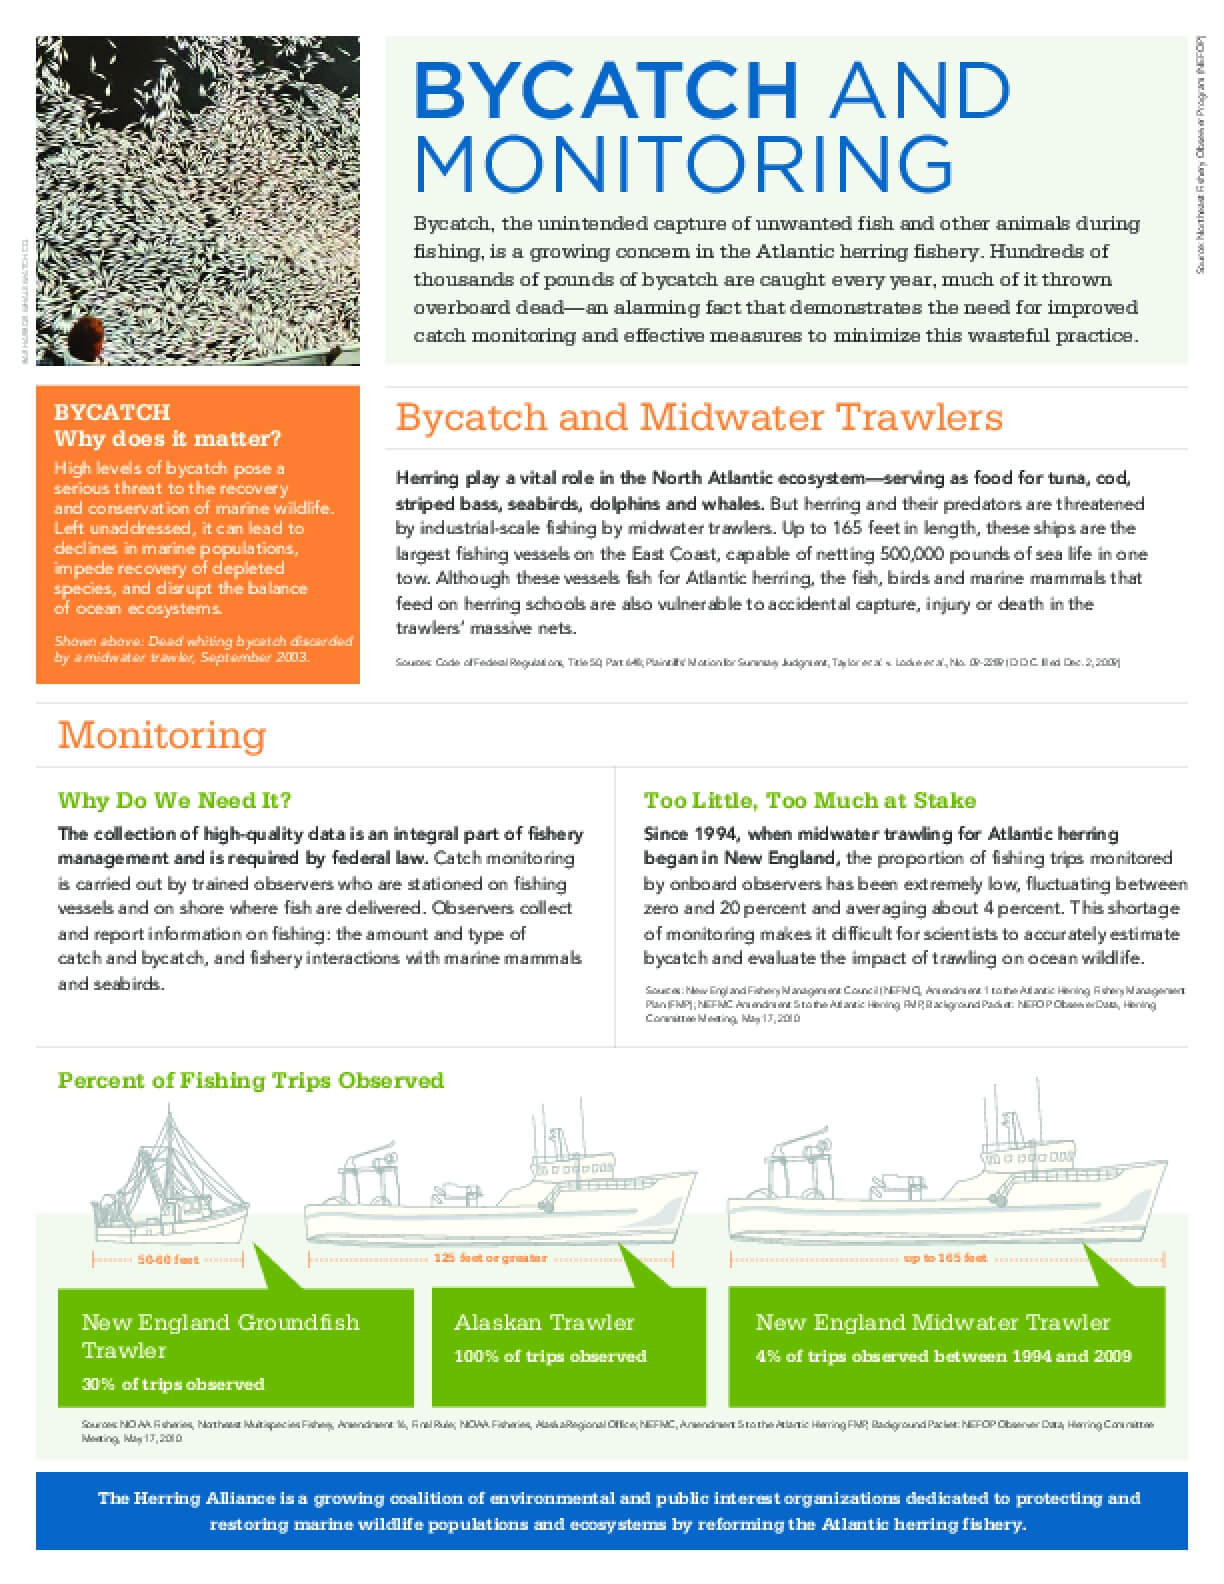 Bycatch and Monitoring